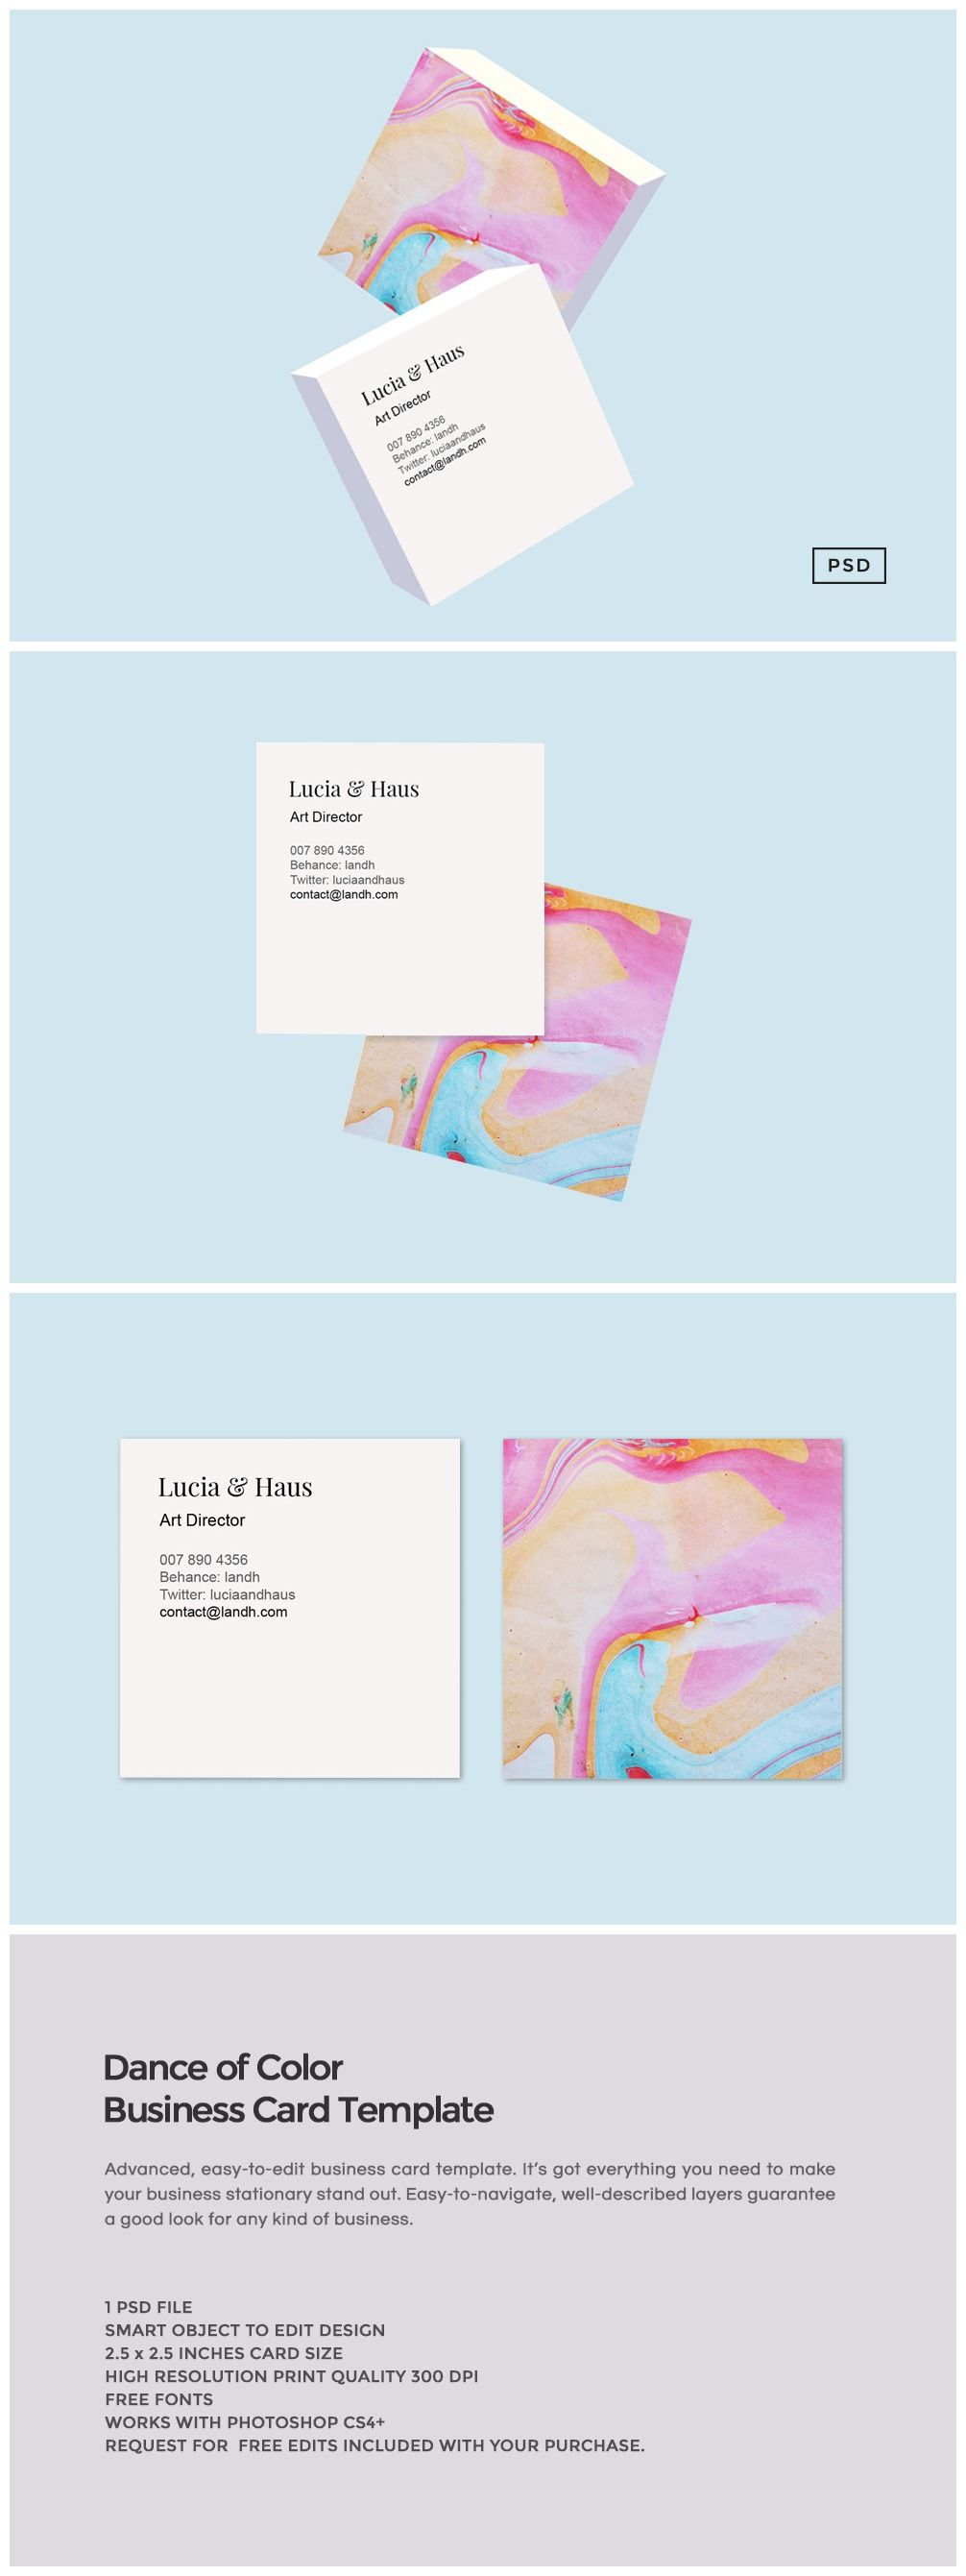 Dance of Color Business Card: This gorgeous business card template is perfect for anyone who wants to make a style statement and stand out.